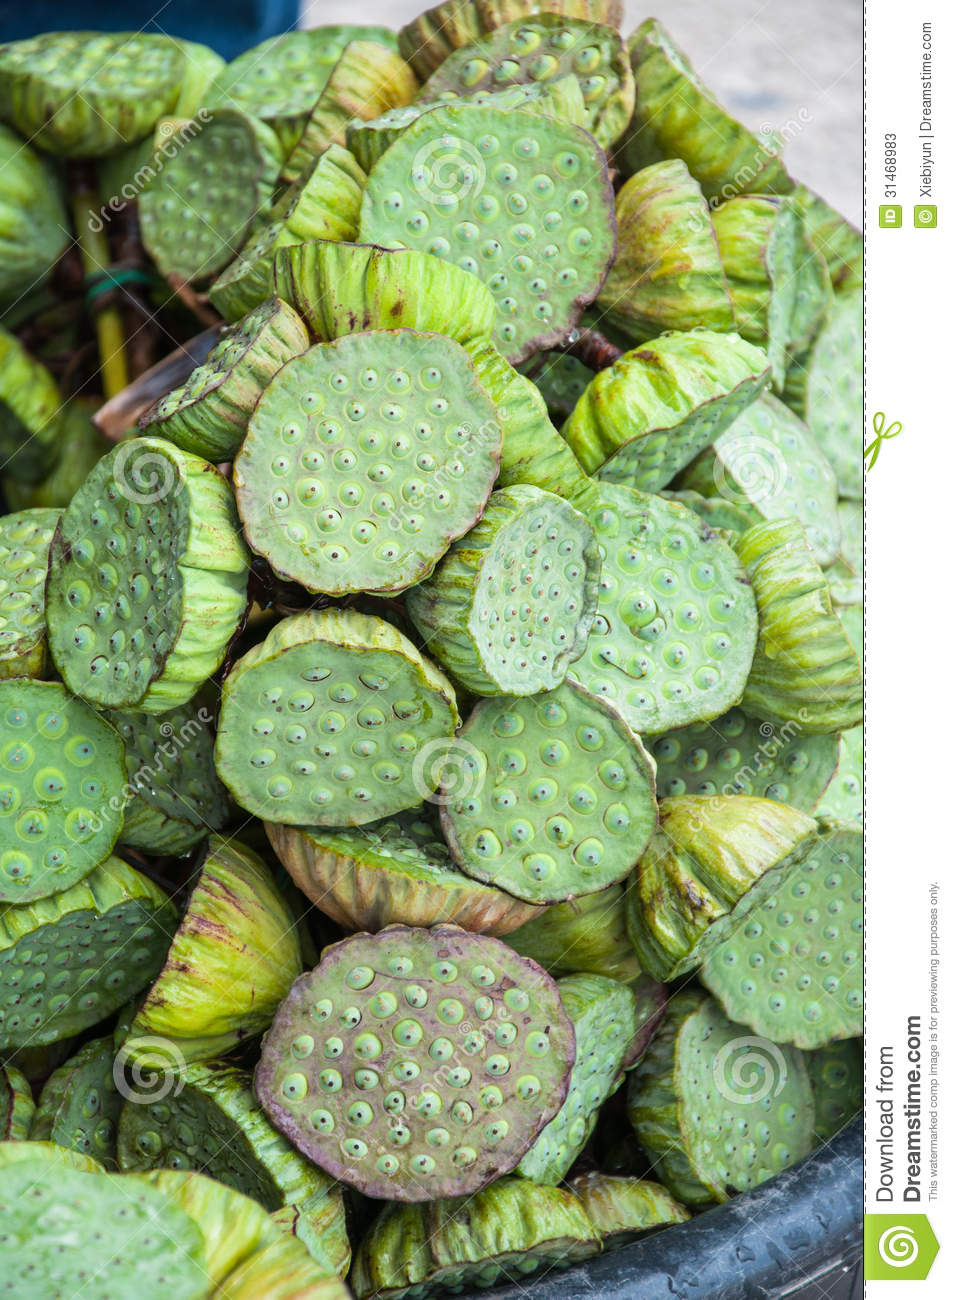 Lotus Seed Pods At Street Market In Thailand Stock Image Image Of